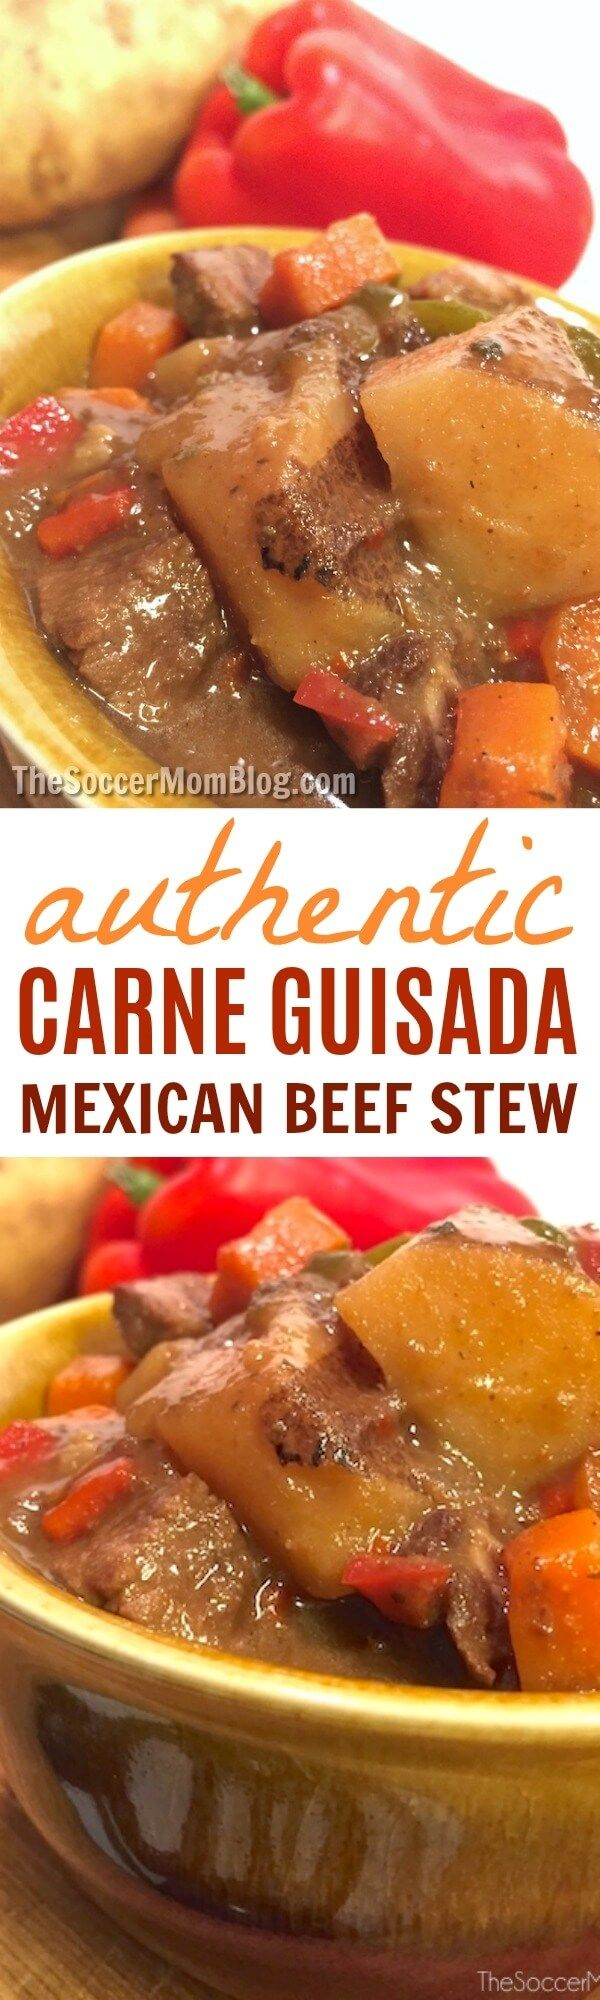 The ultimate comfort food - literally anyone who tries this carne guisada recipe falls in love! An easy, authentic Mexican food classic (can make in crockpot too!) #Mexicanfood #soup #stew